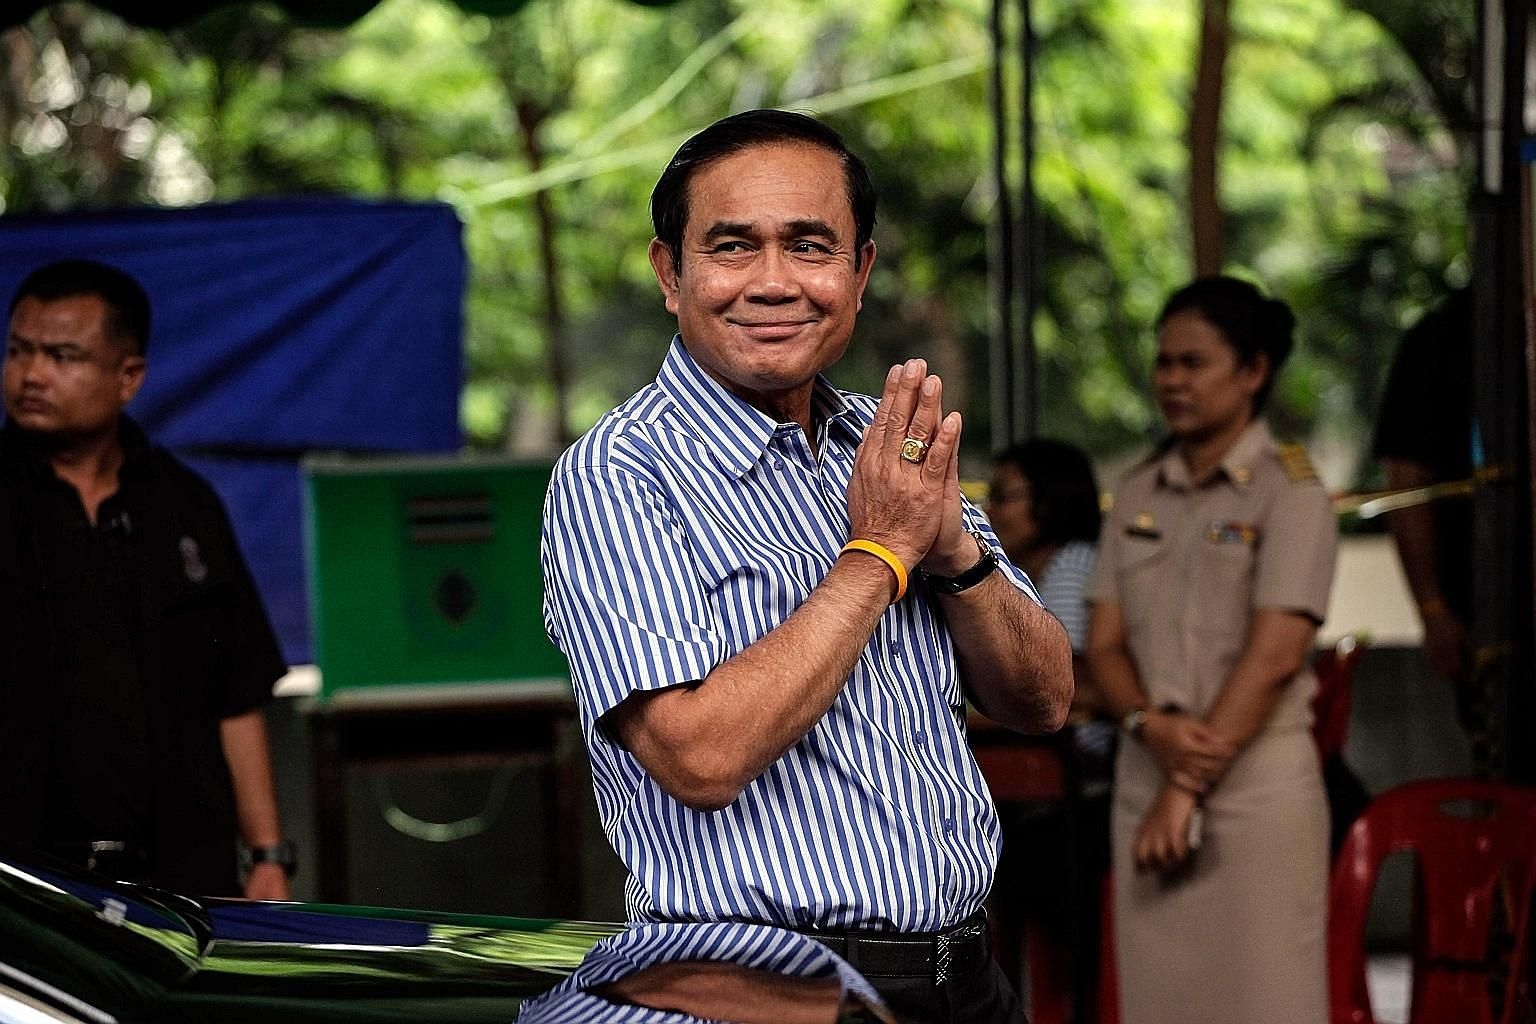 Thai Prime Minister Prayut Chan-o-cha said last week that the government may announce elections next year, but that the polls could be held only in 2019 as essential laws need to be ratified.